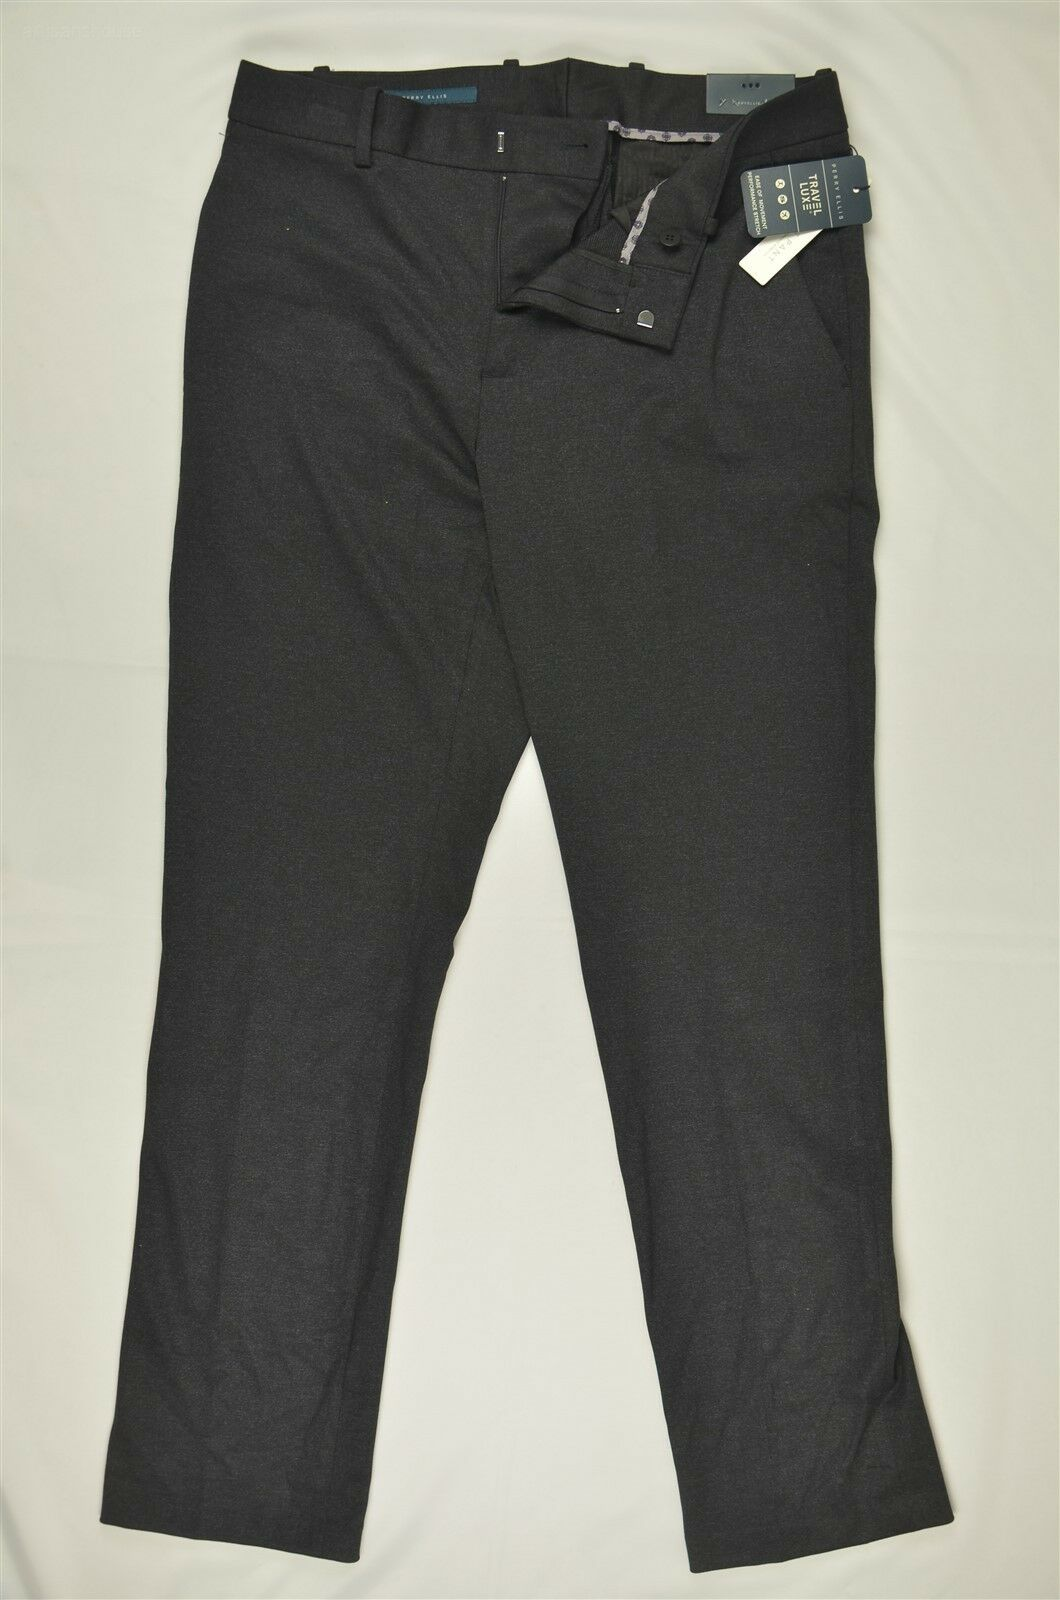 NEW MEN'S Perry Ellis Travel Luxe Flat Front Dress Pants 33x32